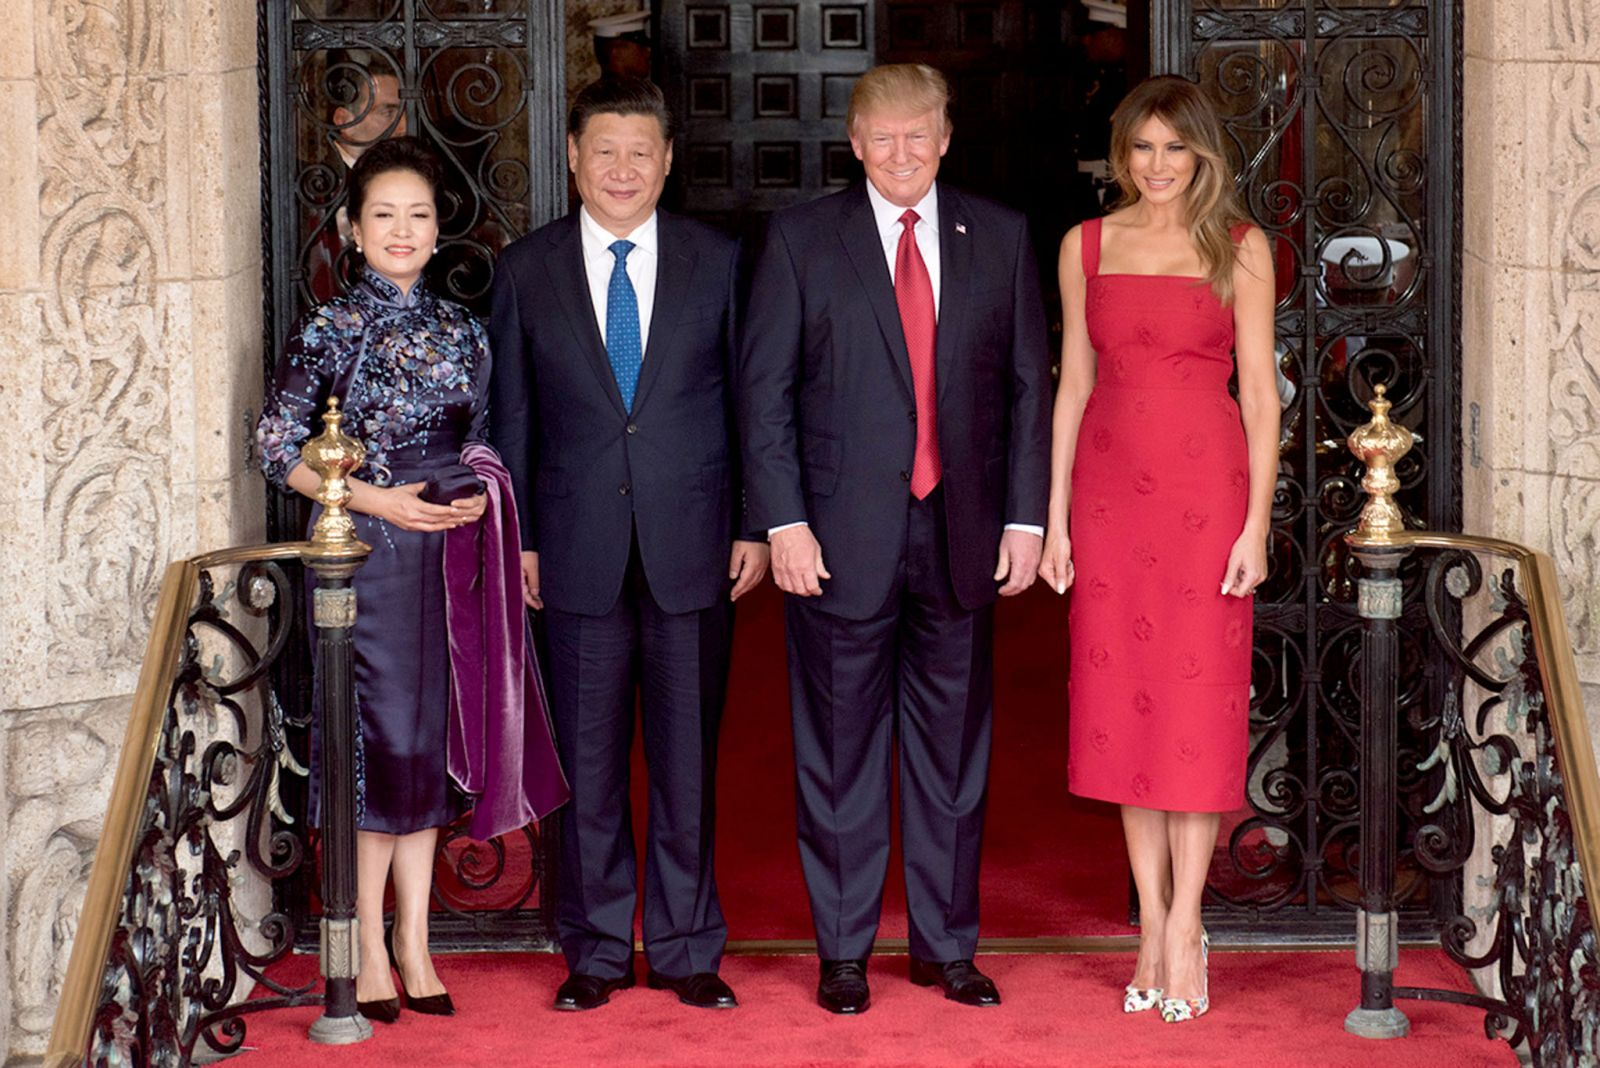 Peng_Liyuan,_Xi_Jingping,_Donald_Trump_and_Melania_Trump_at_the_entrance_of_Mar-a-Lago,_April_2017.jpg